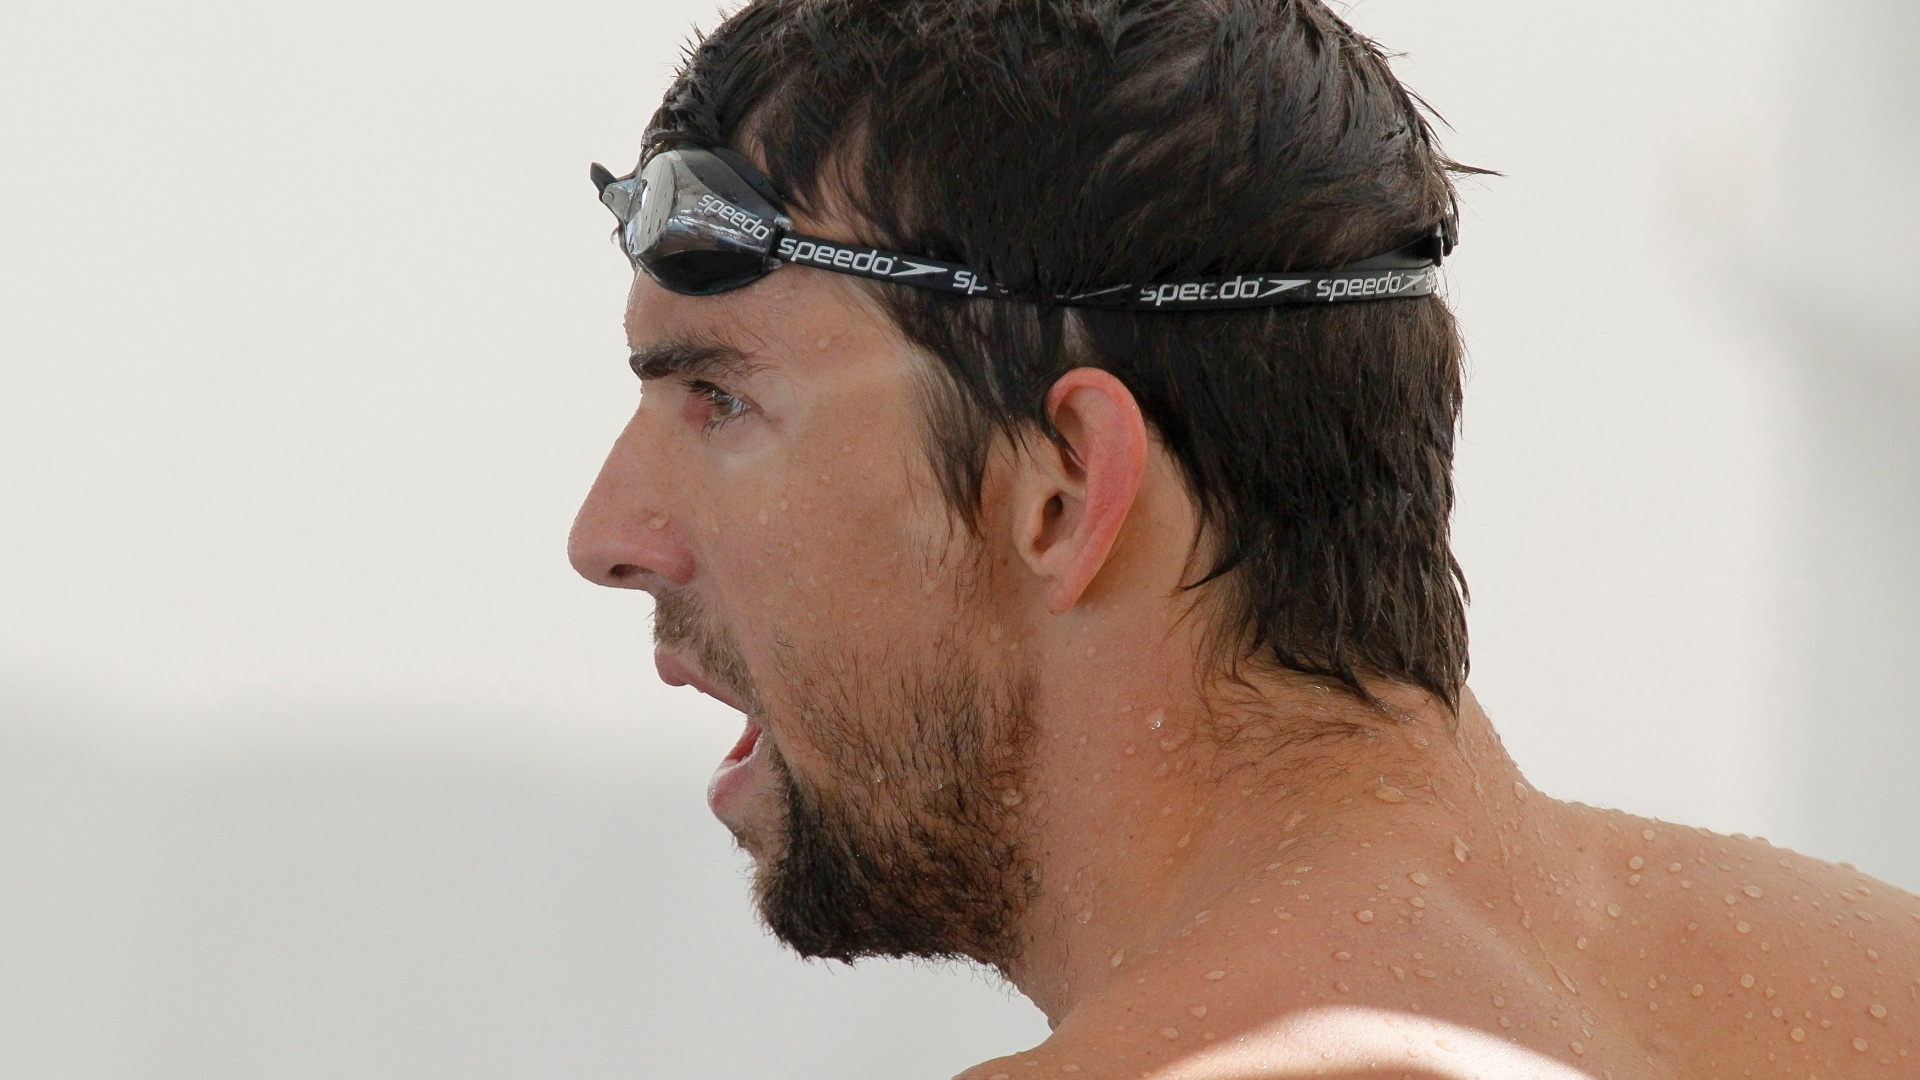 Nadador norte-americano Michael Phelps treina em Londres neste sbado (21/07/12)